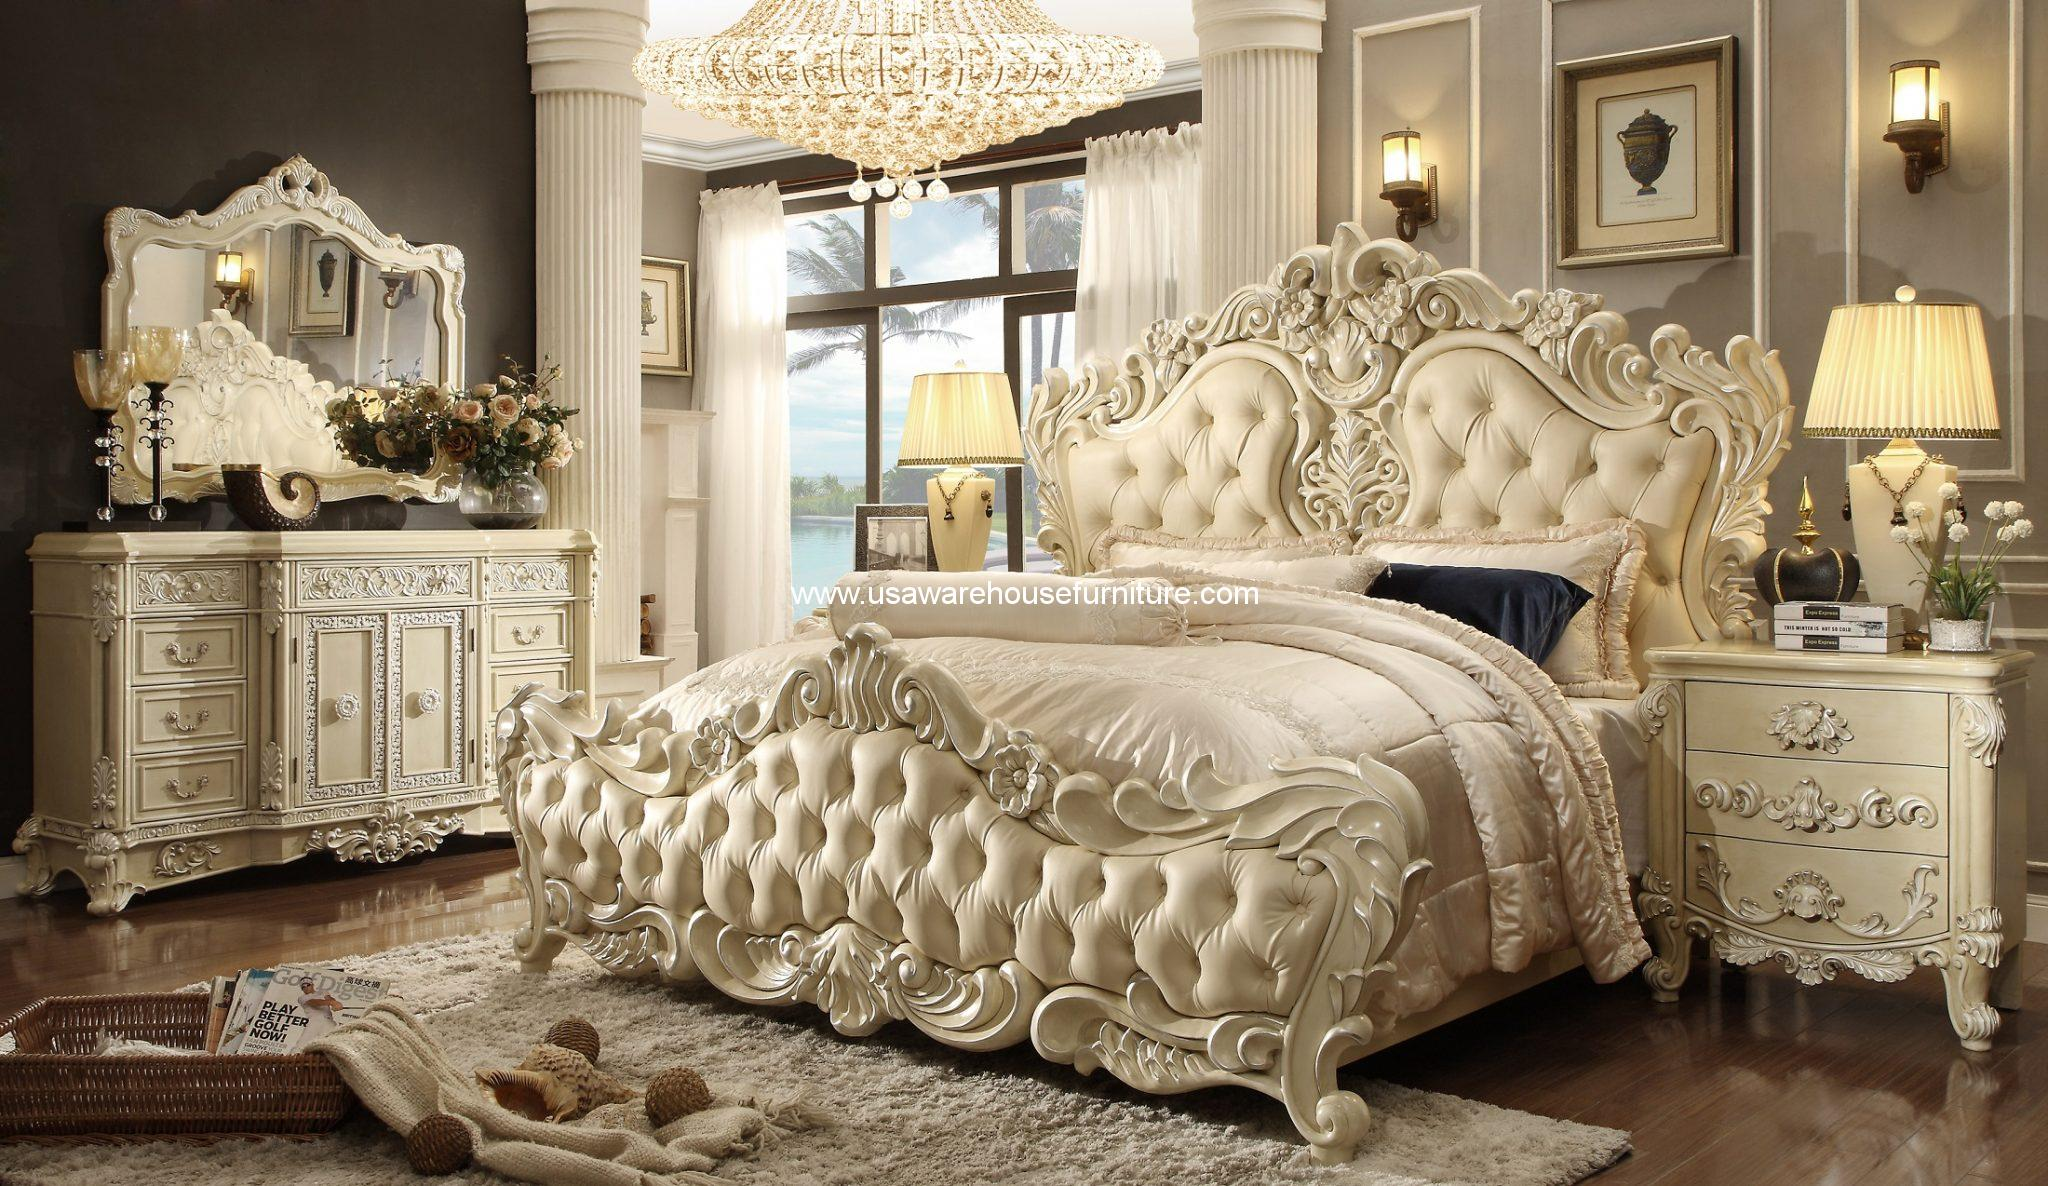 Homey Design HD-5800 5Pc Imperial Palace Bedroom Set - USA Warehouse